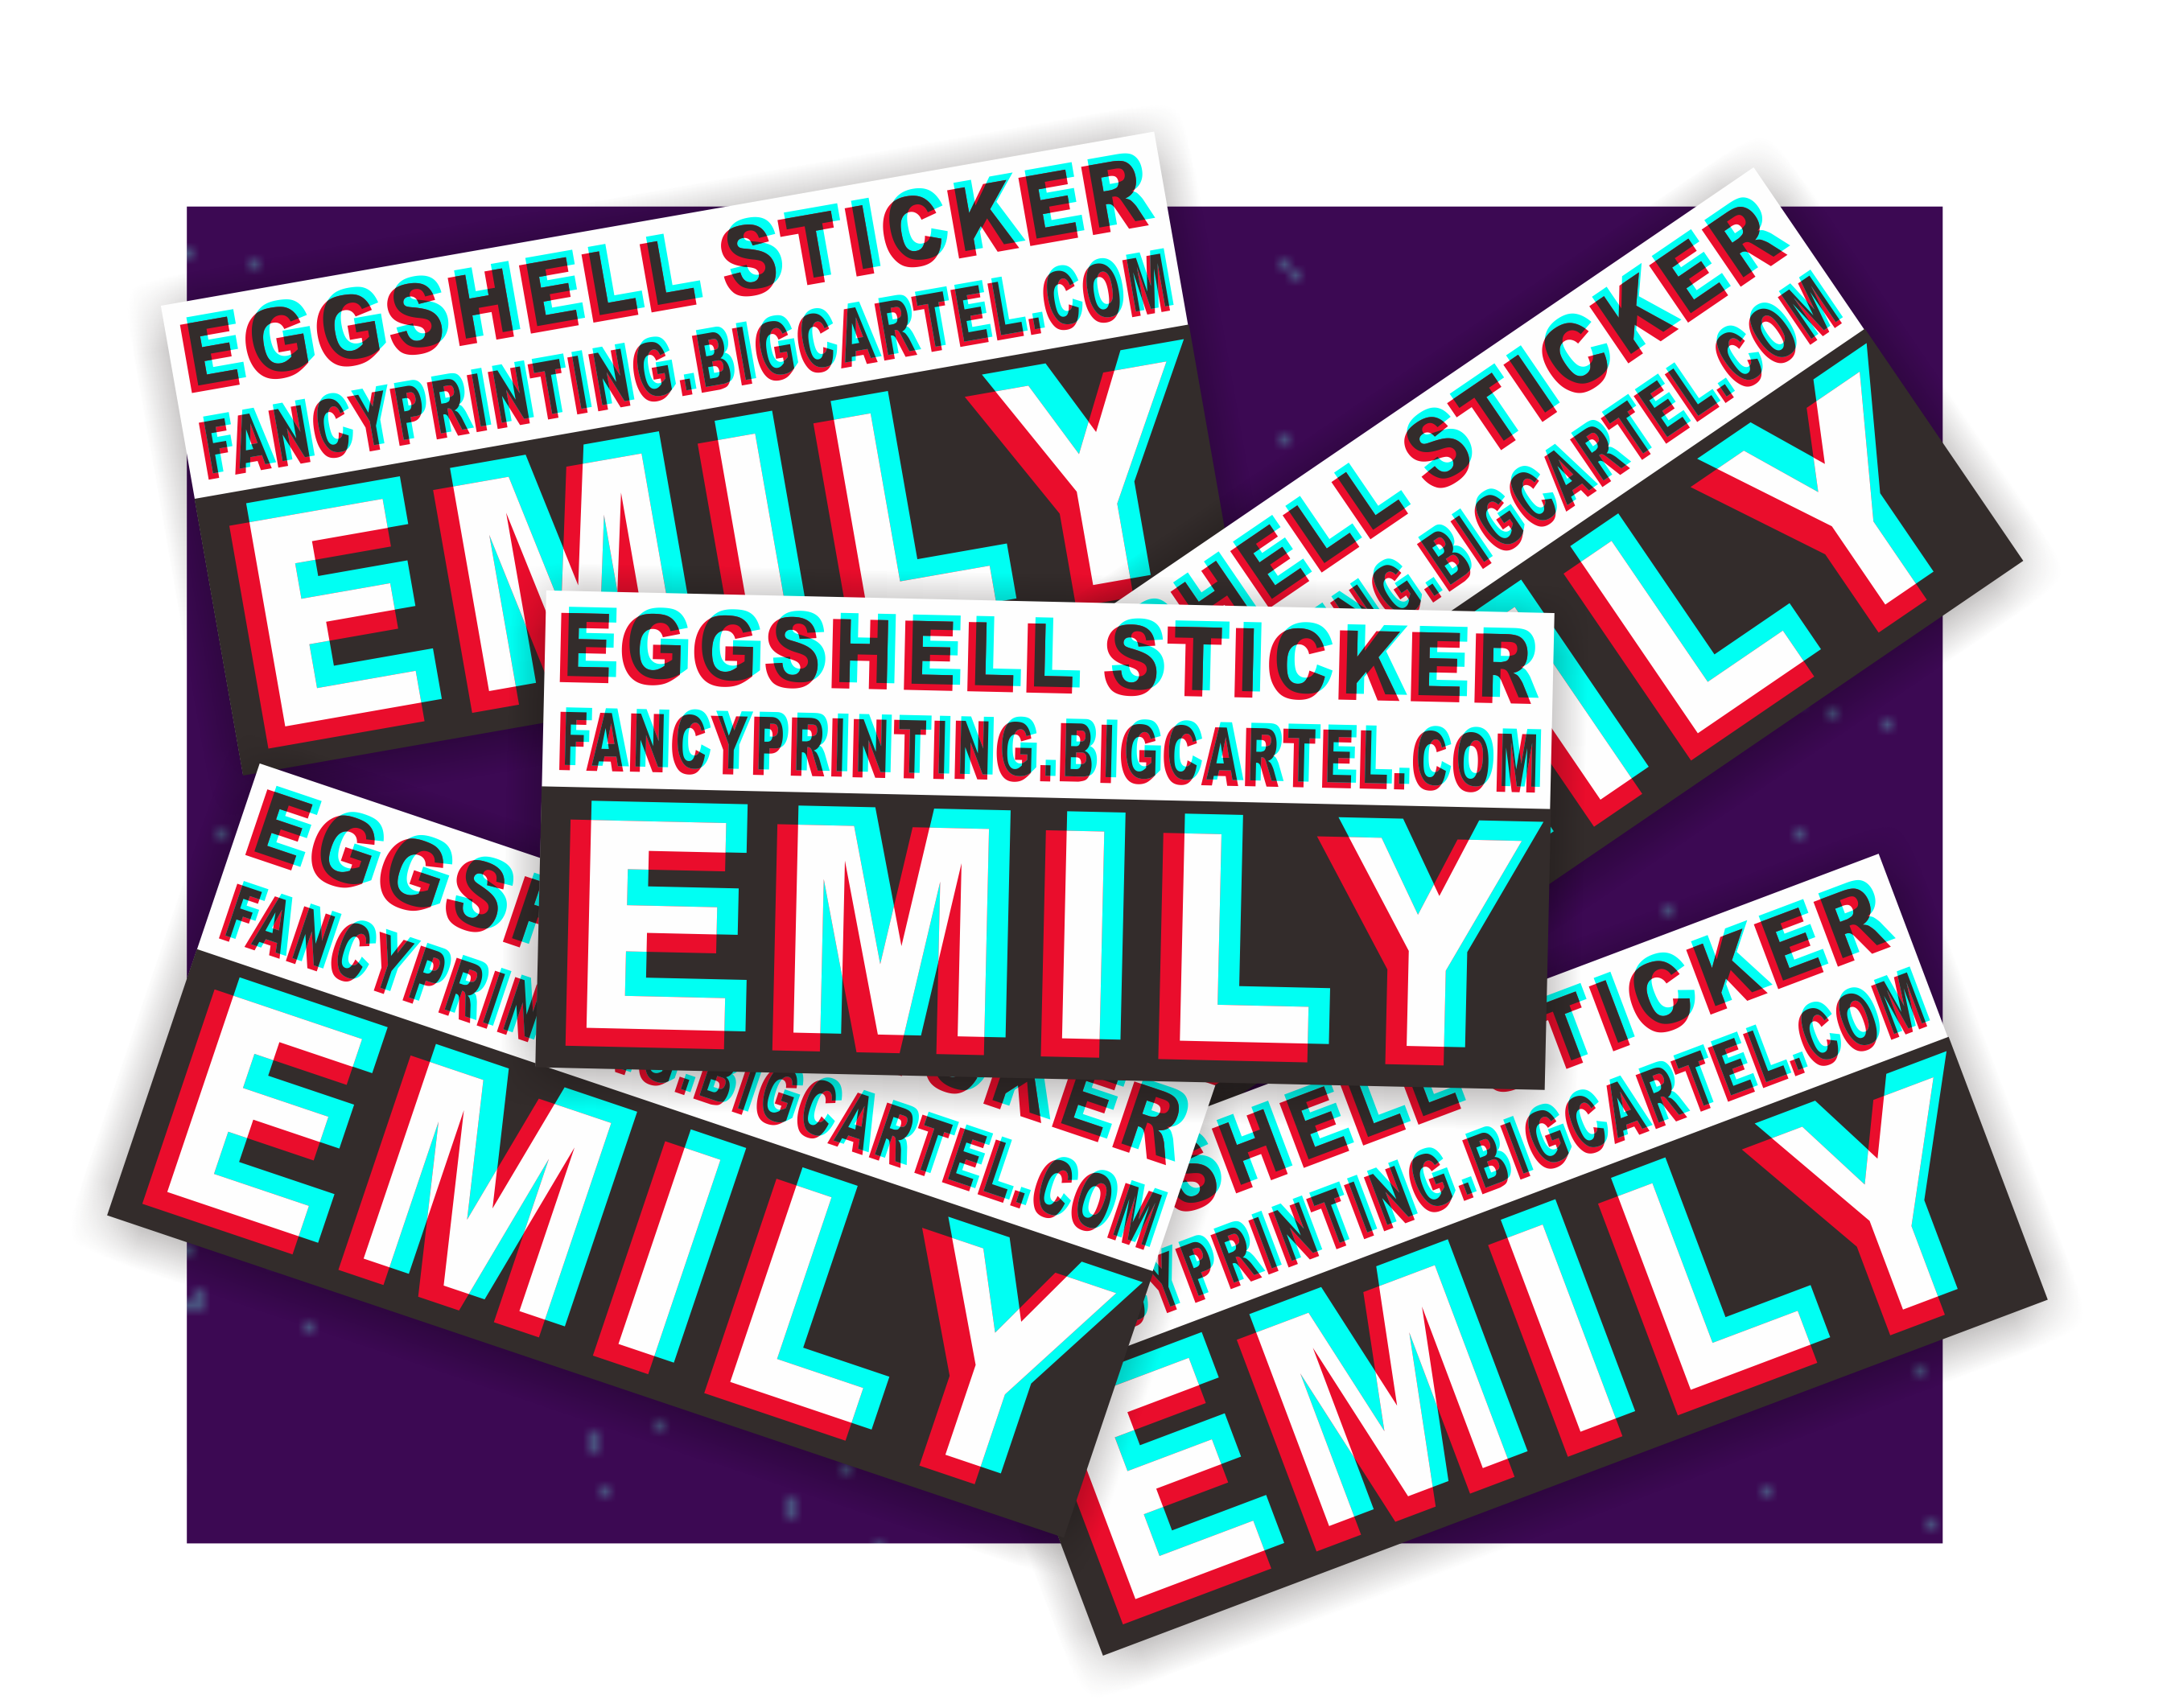 Eggshellstickers emily fancyprintemily on pinterest